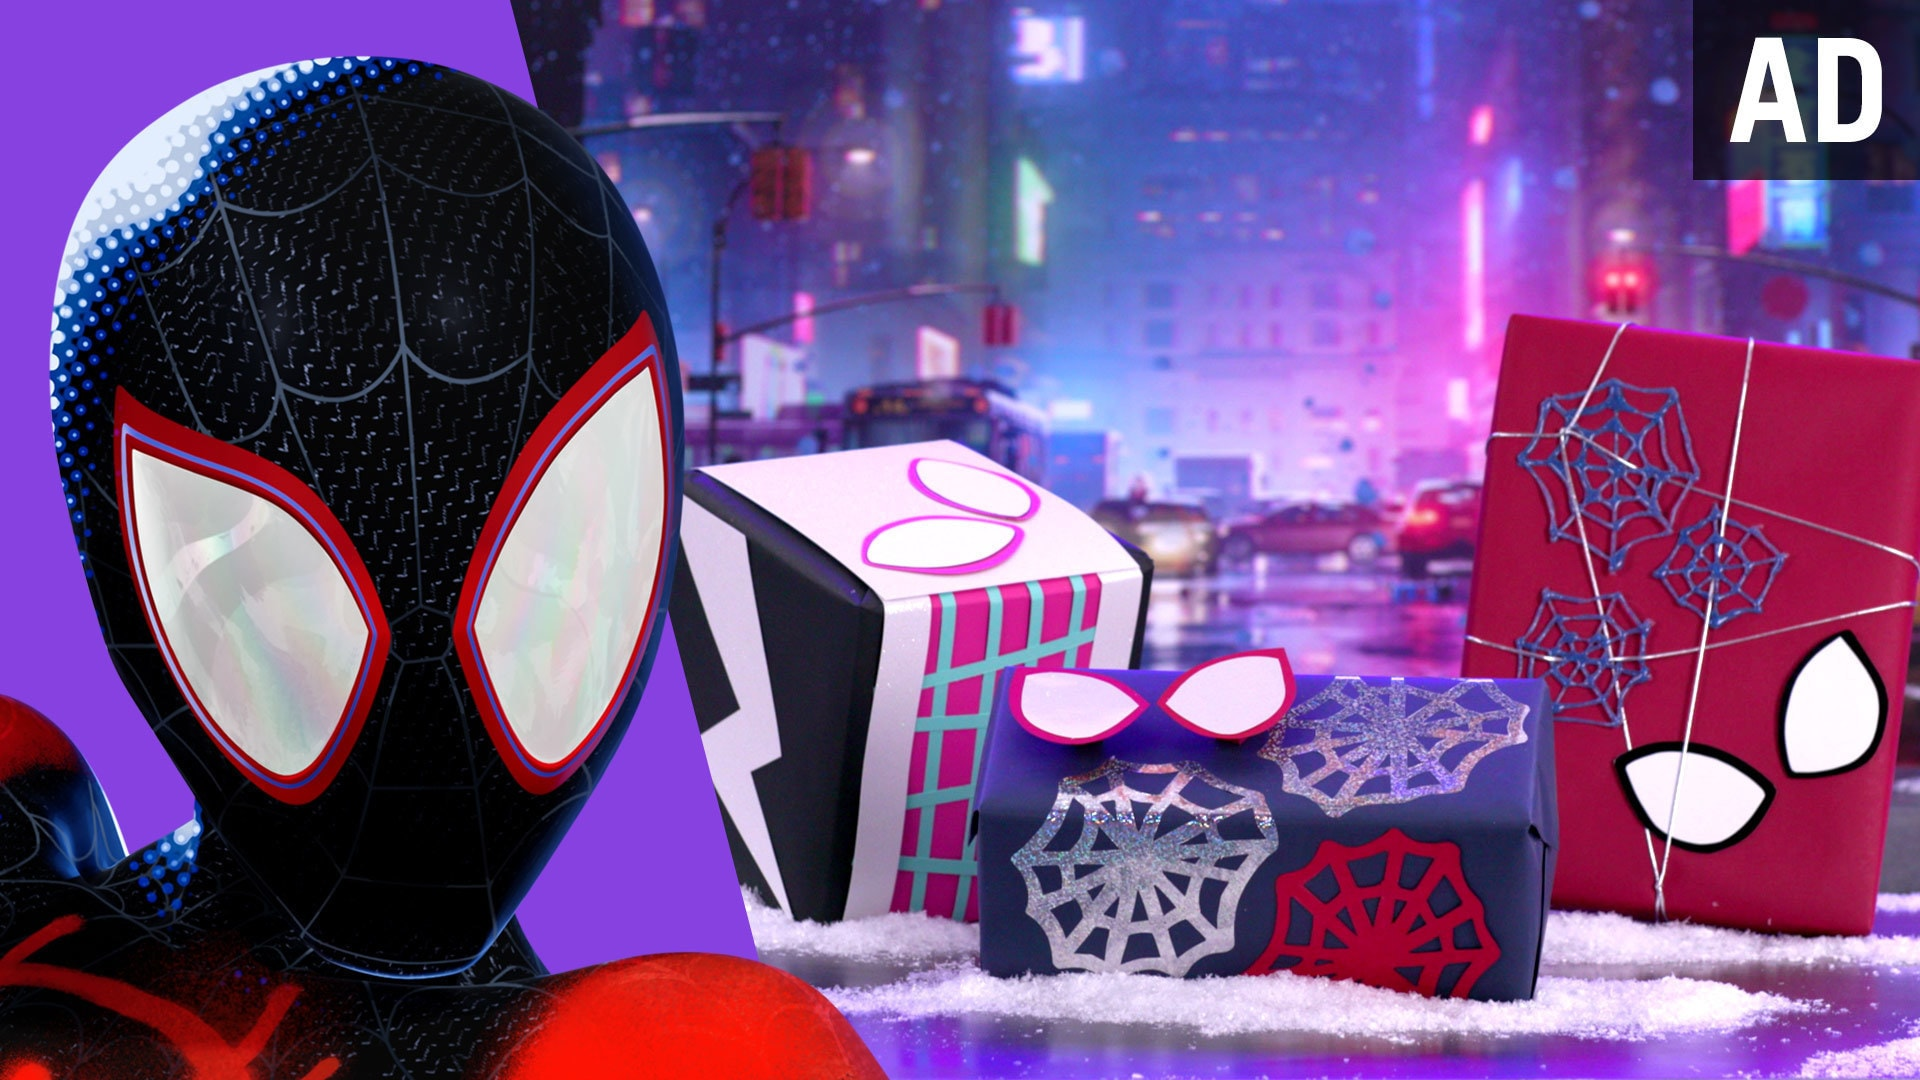 DIY Gift Wrapping Paper Inspired by Spider-Man: Into the Spider-Verse | Disney DIY by Disney Family